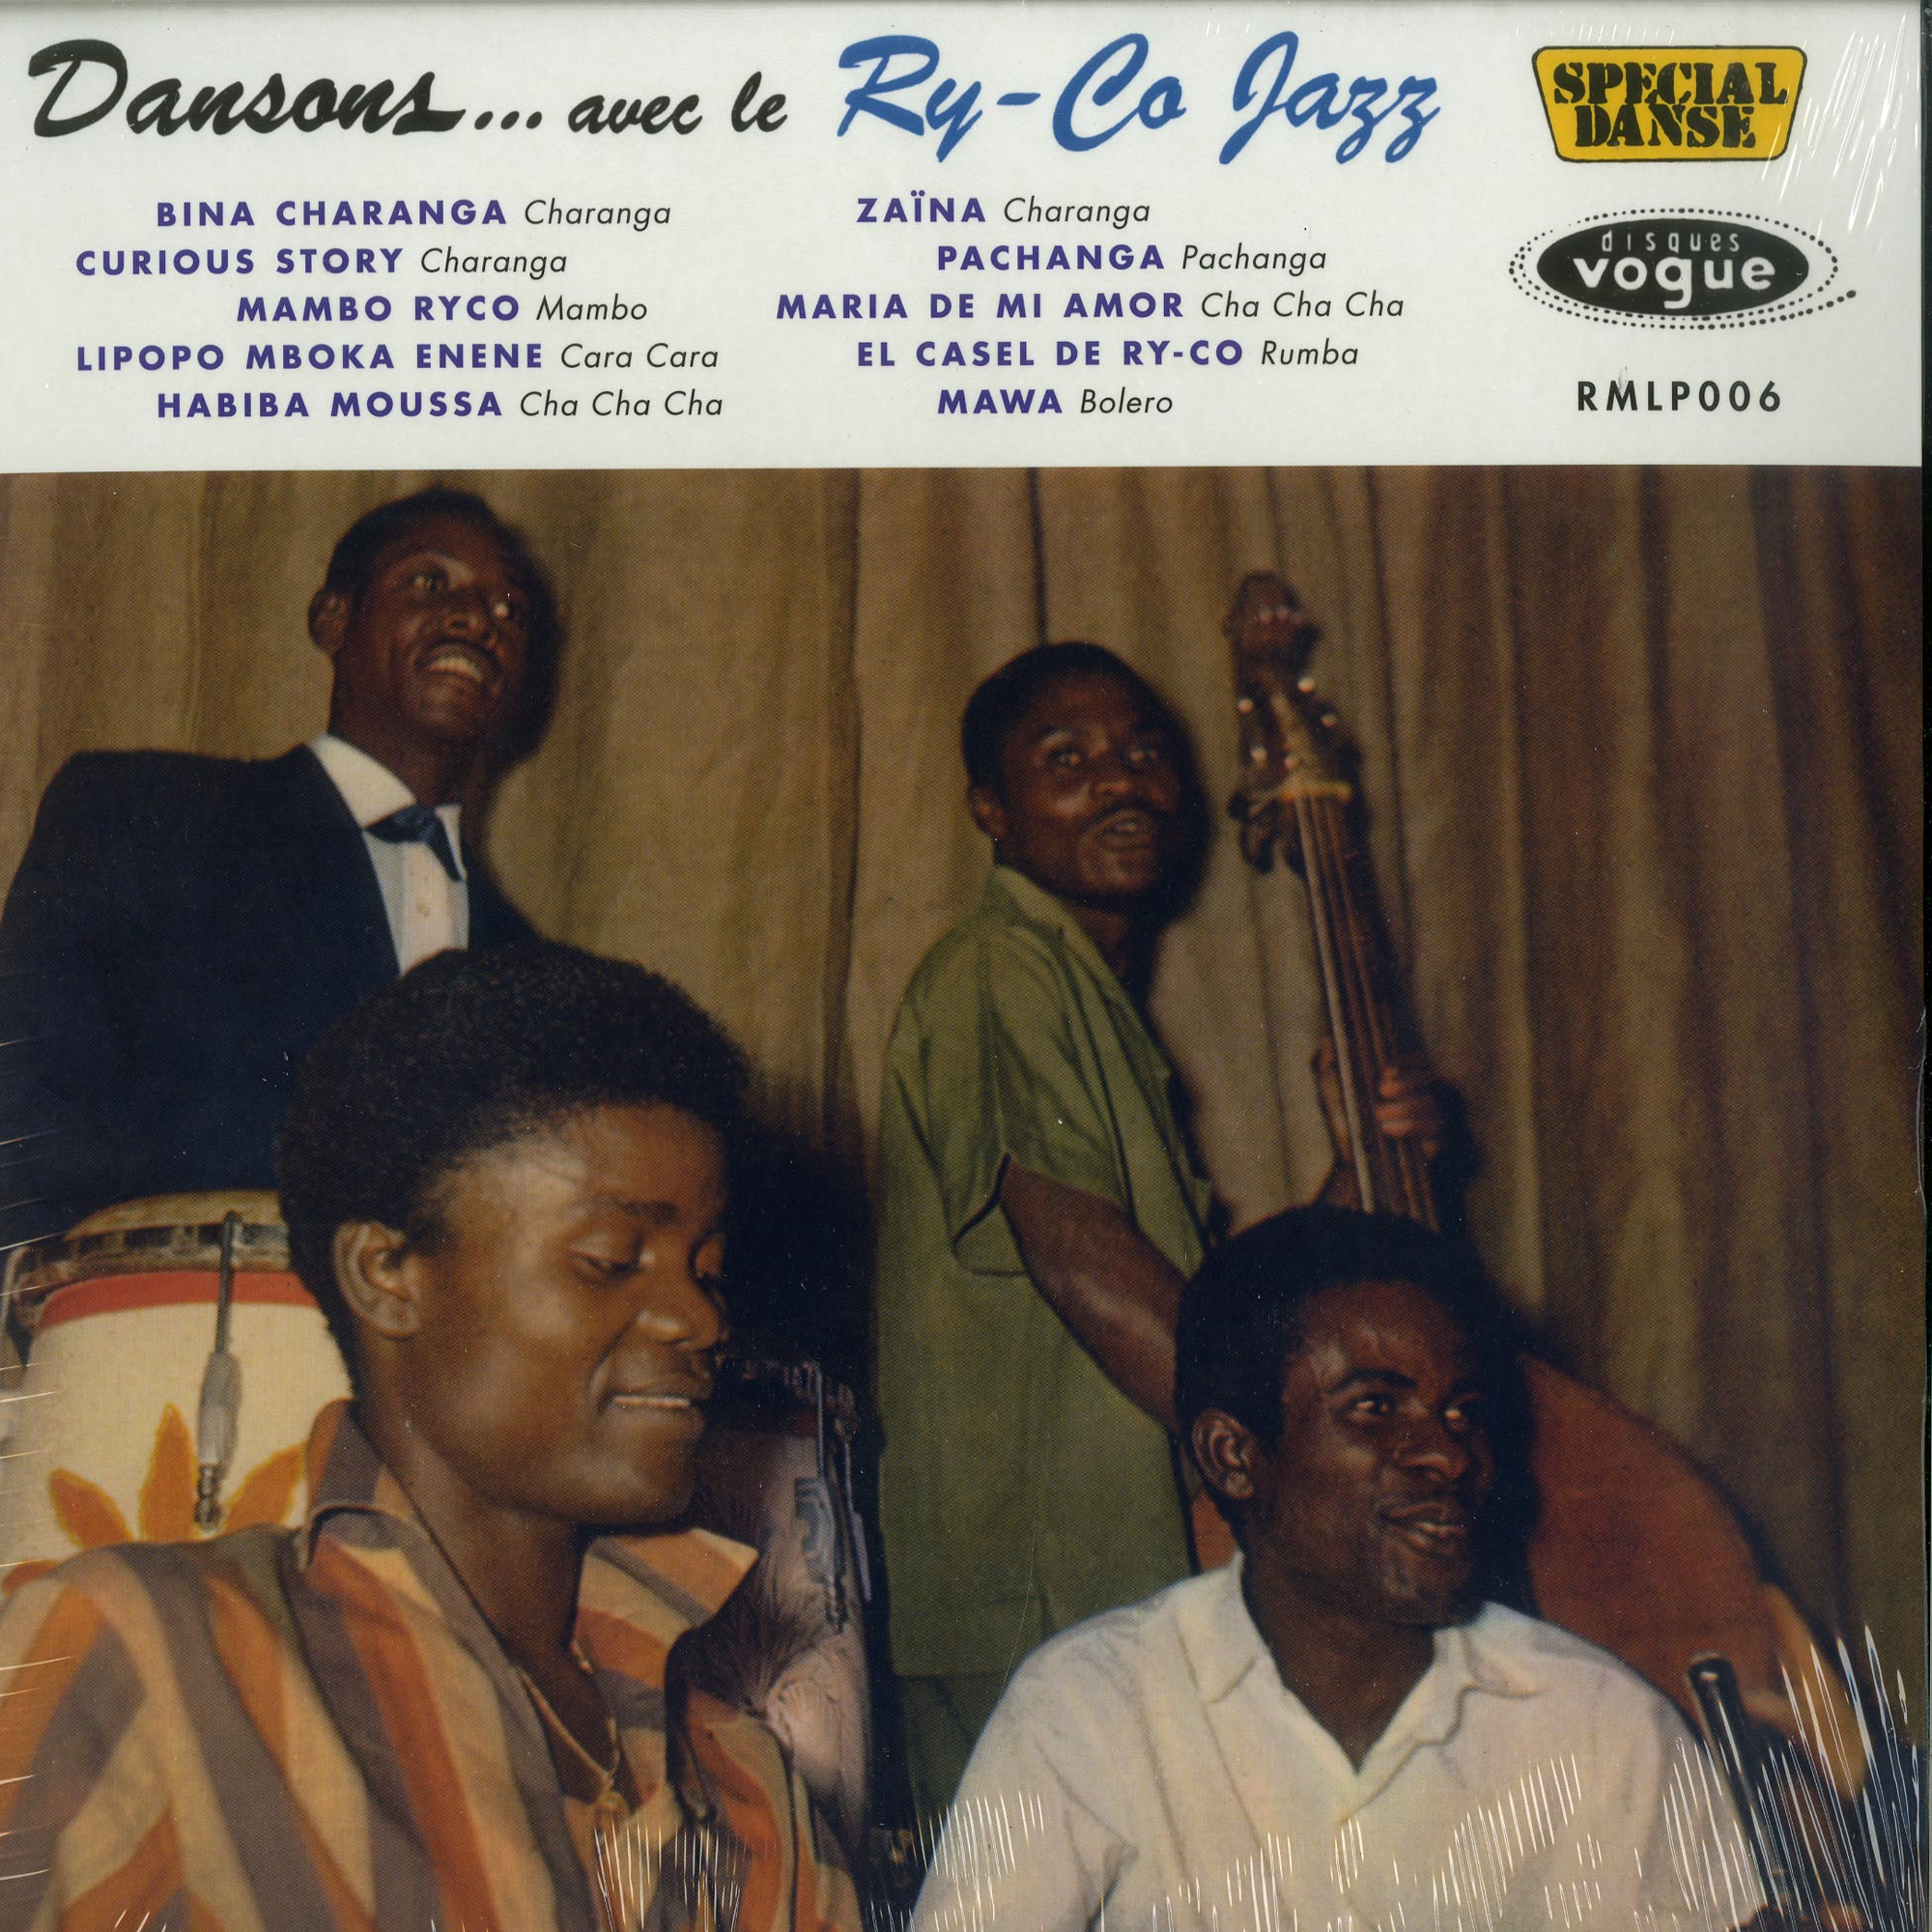 Ry-co Jazz - DANSONS AVEC LE RY-CO JAZZ